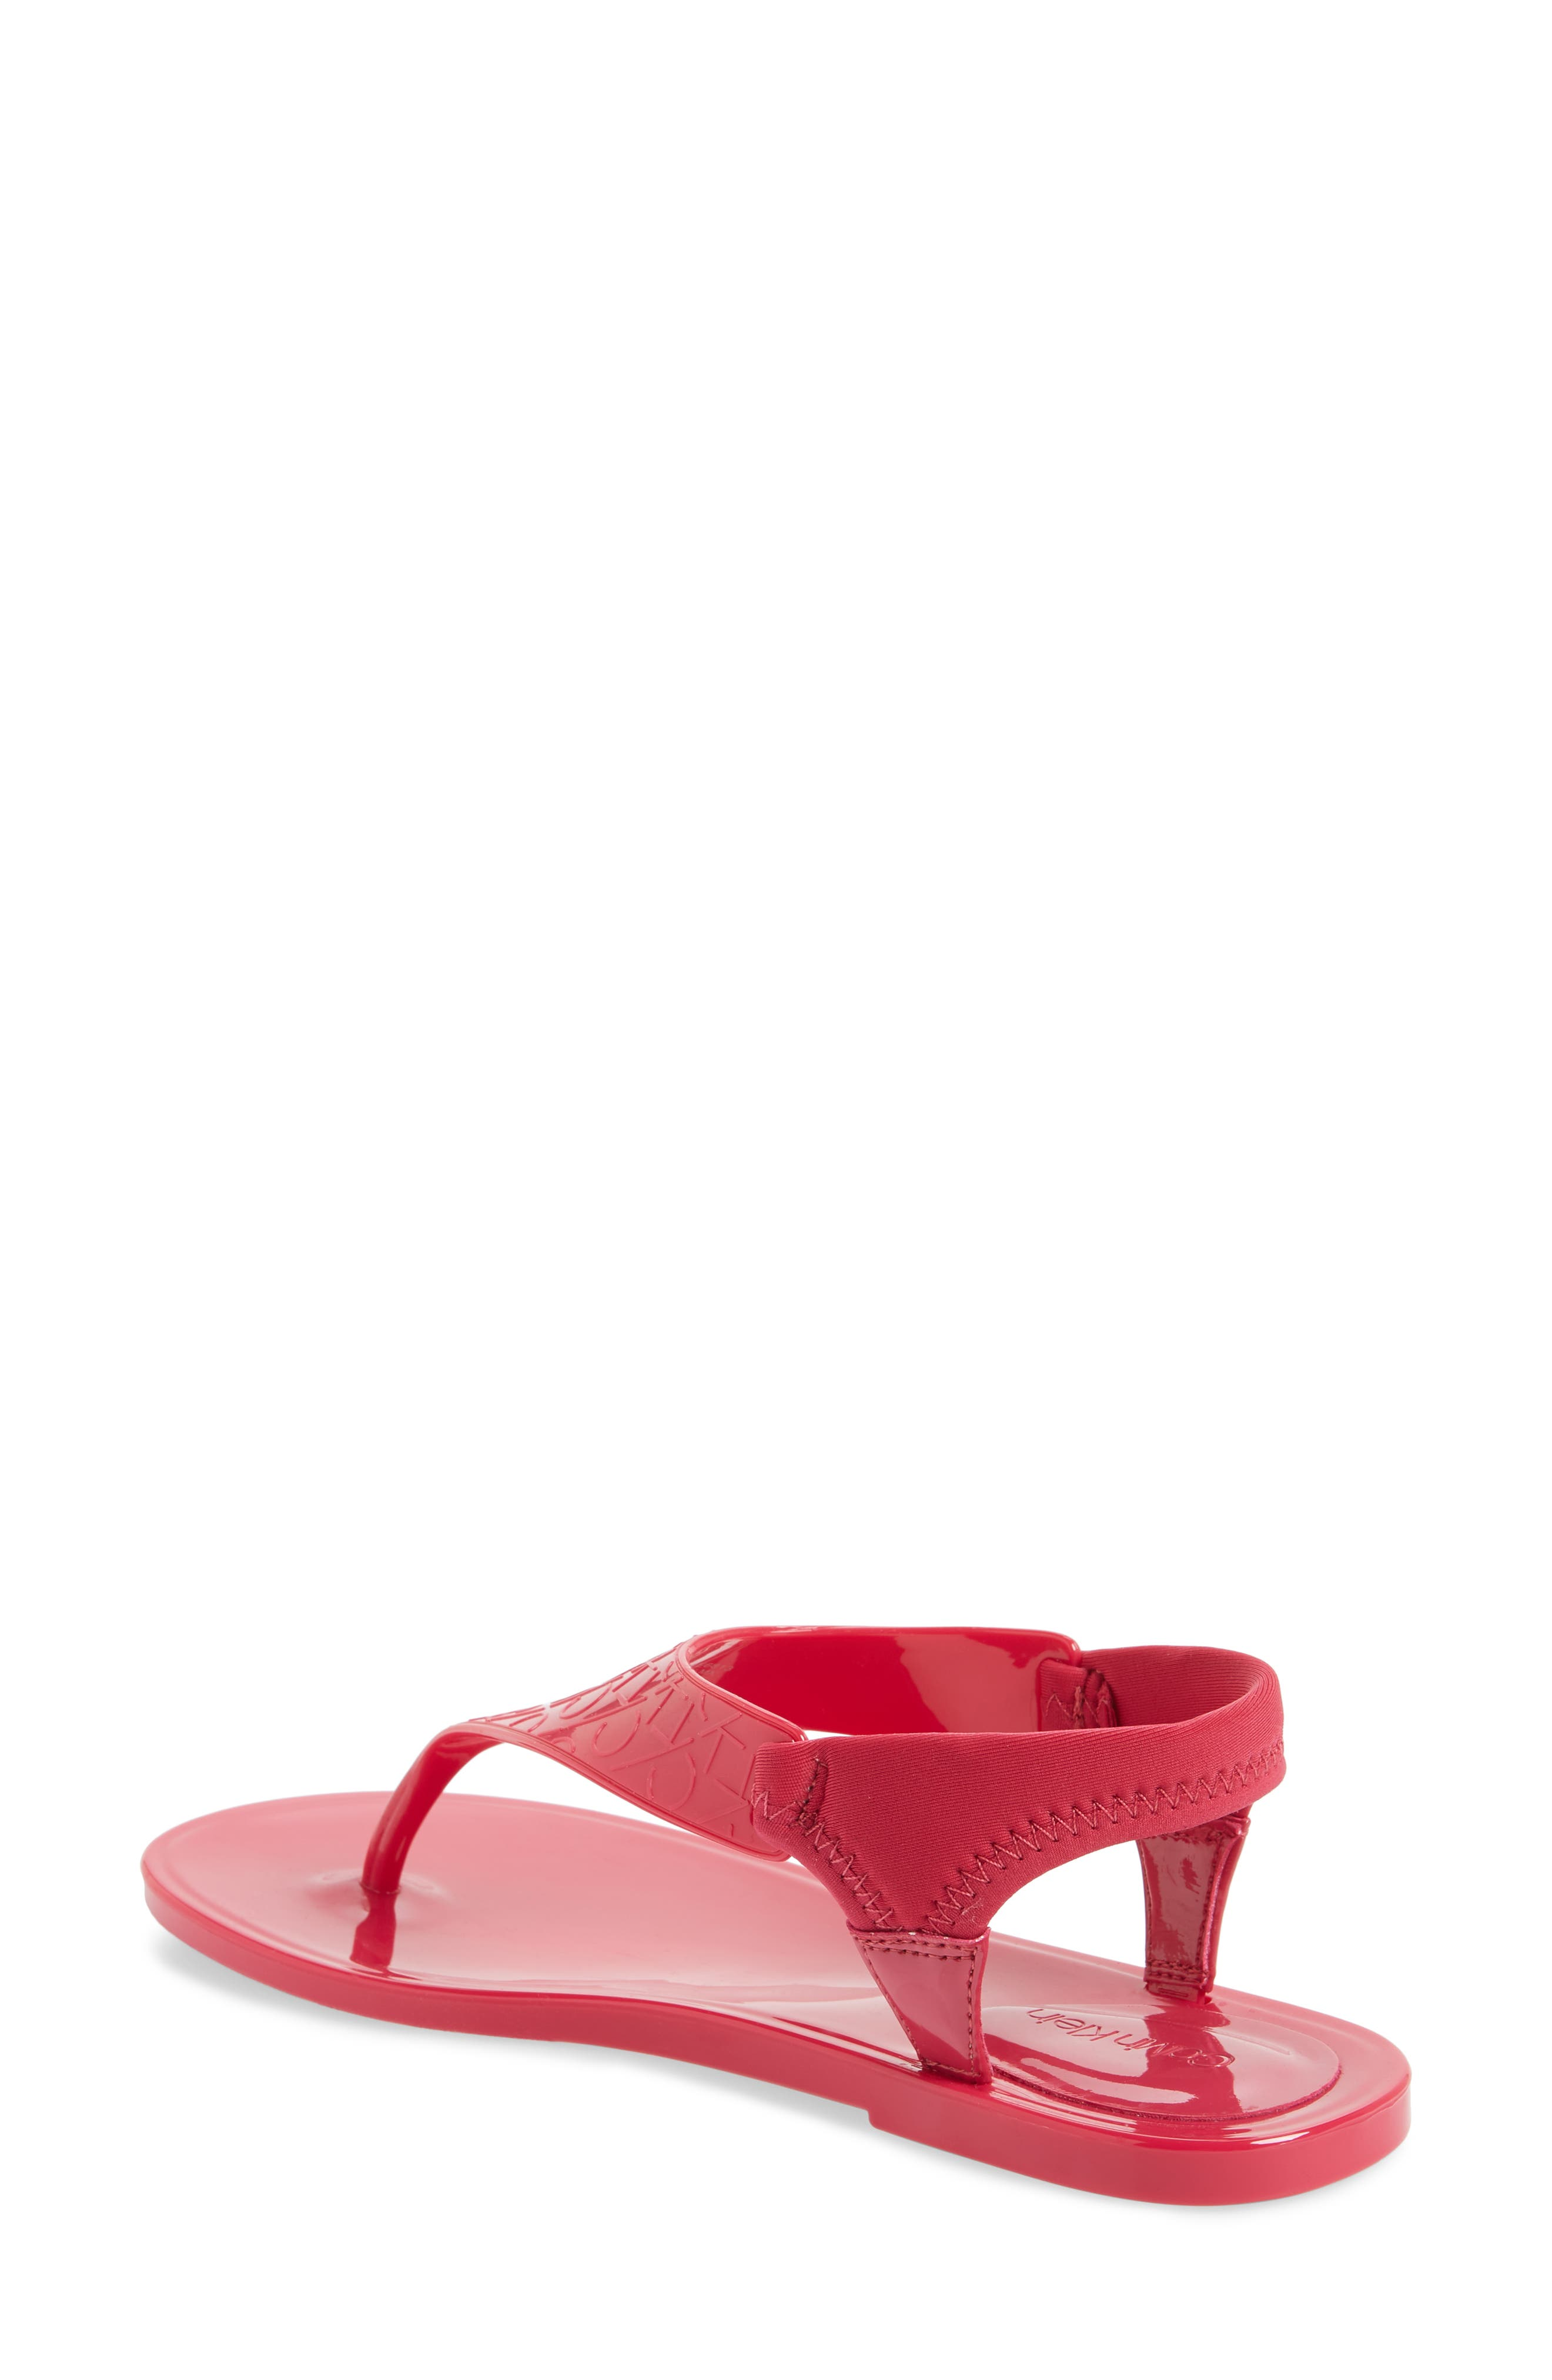 Janny Jelly Sandal,                             Alternate thumbnail 2, color,                             Hibiscus Pink